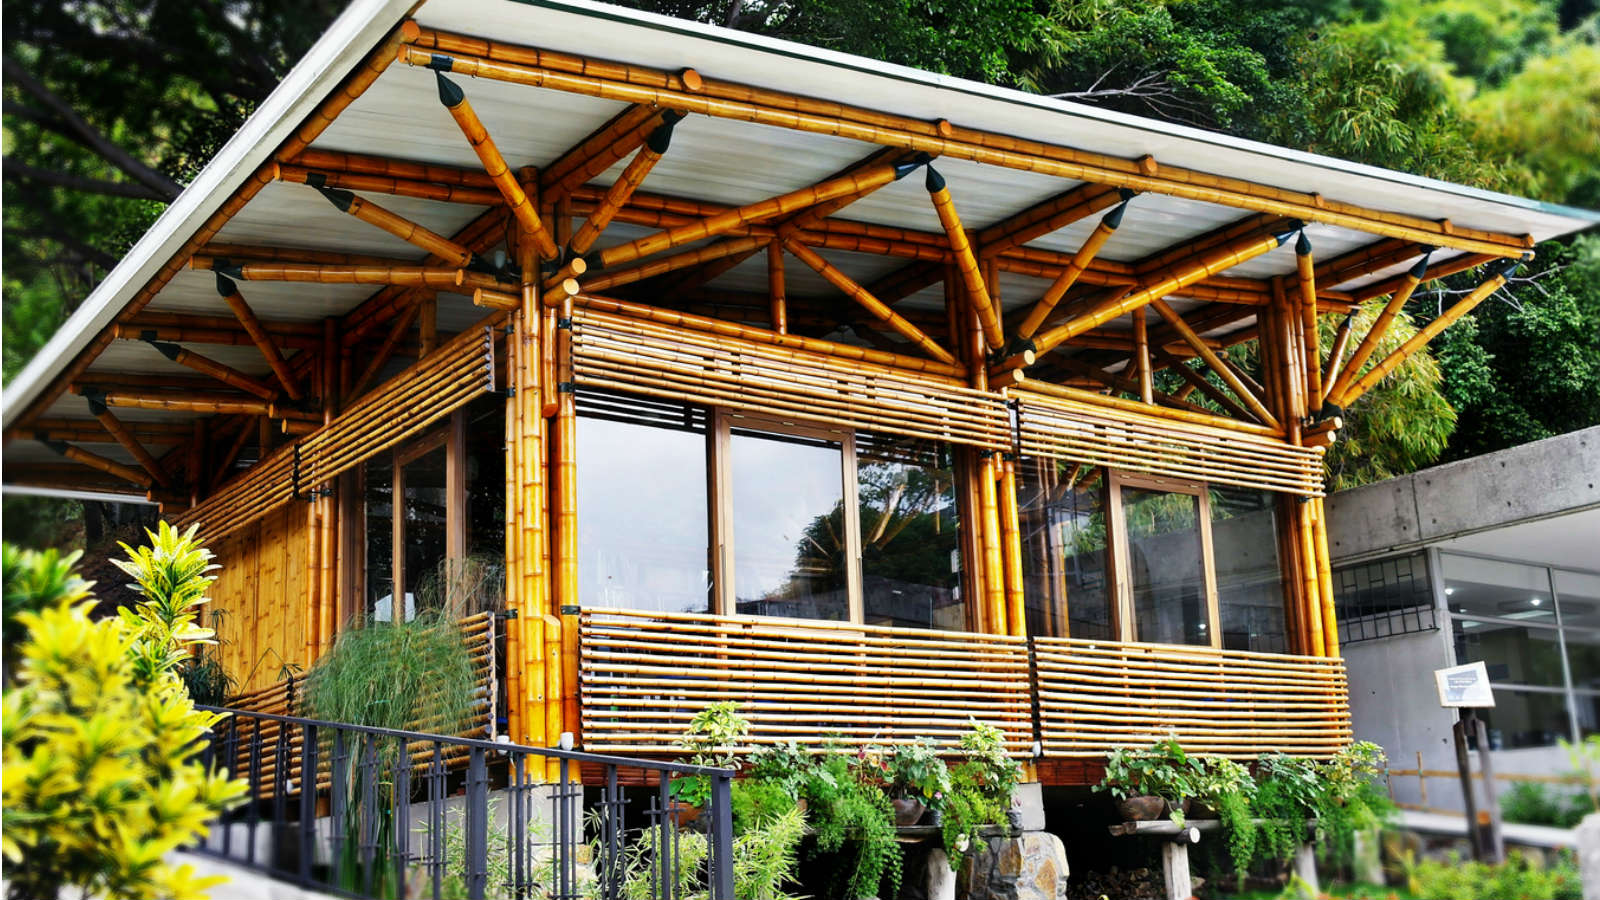 Are you ready for a future with printed cars and bamboo houses?